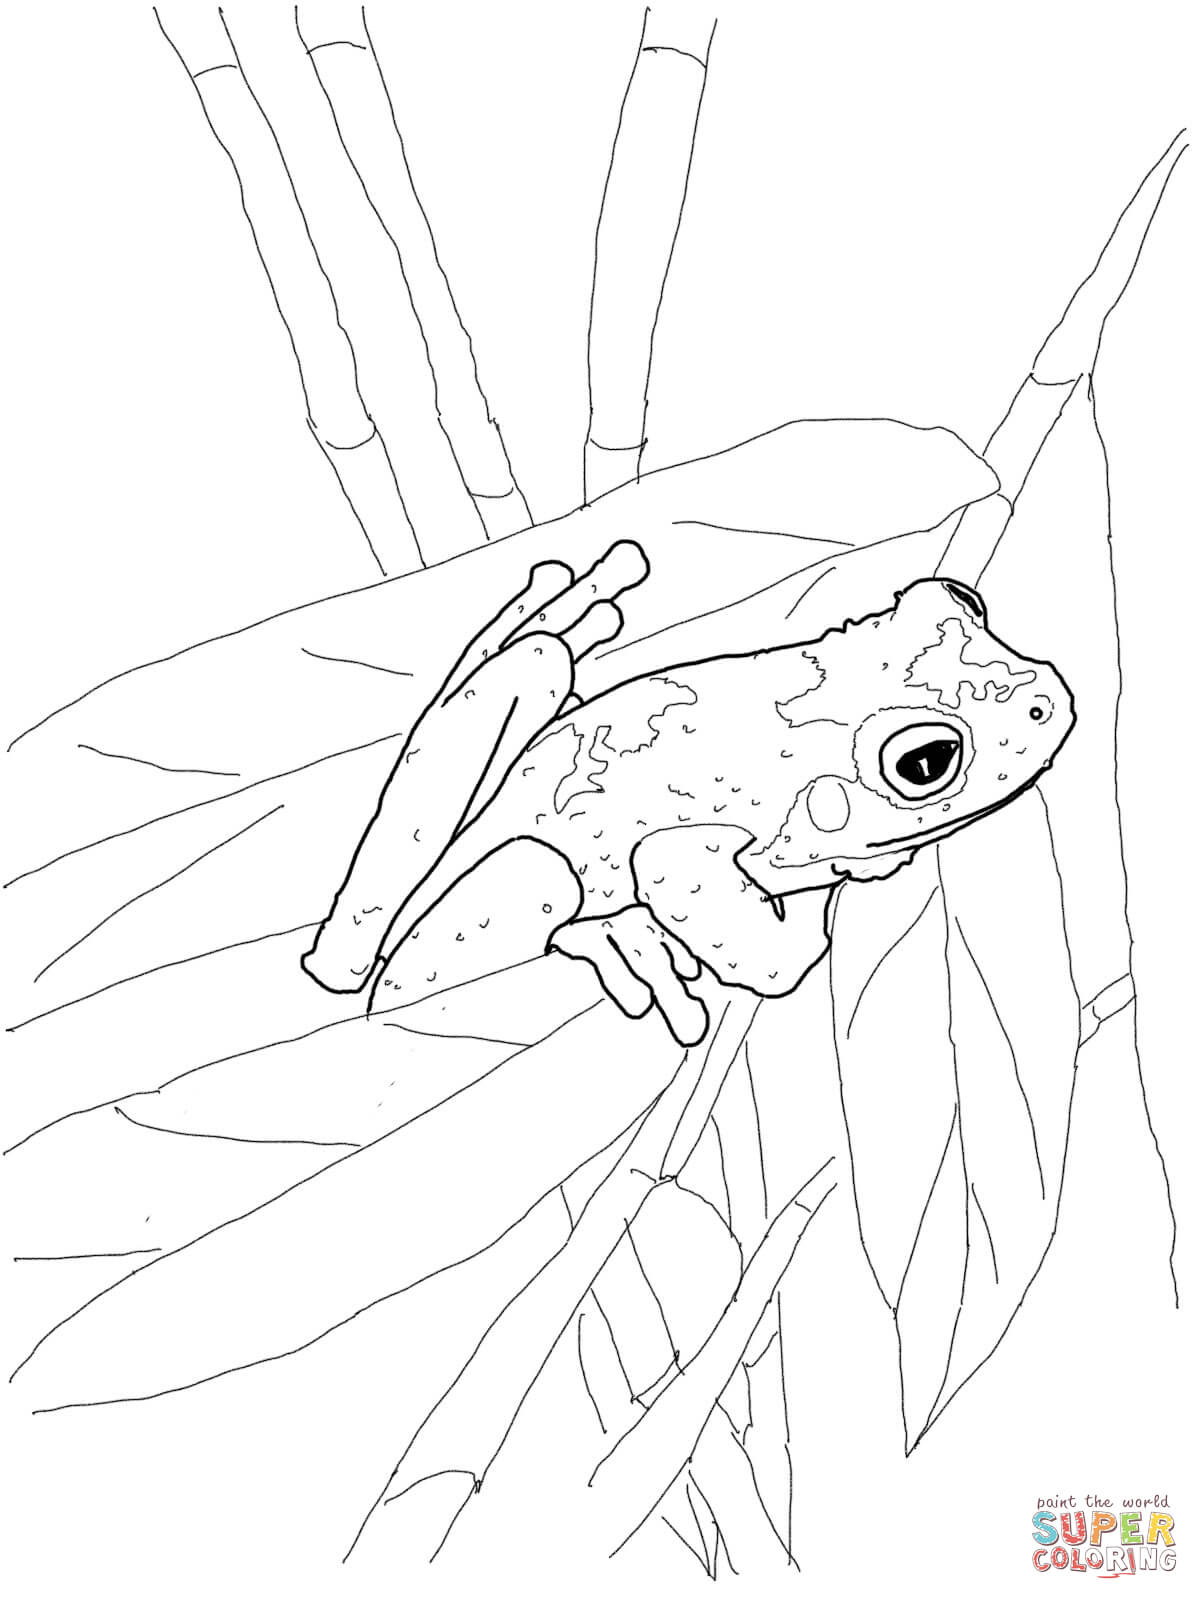 Tree Frog coloring #16, Download drawings